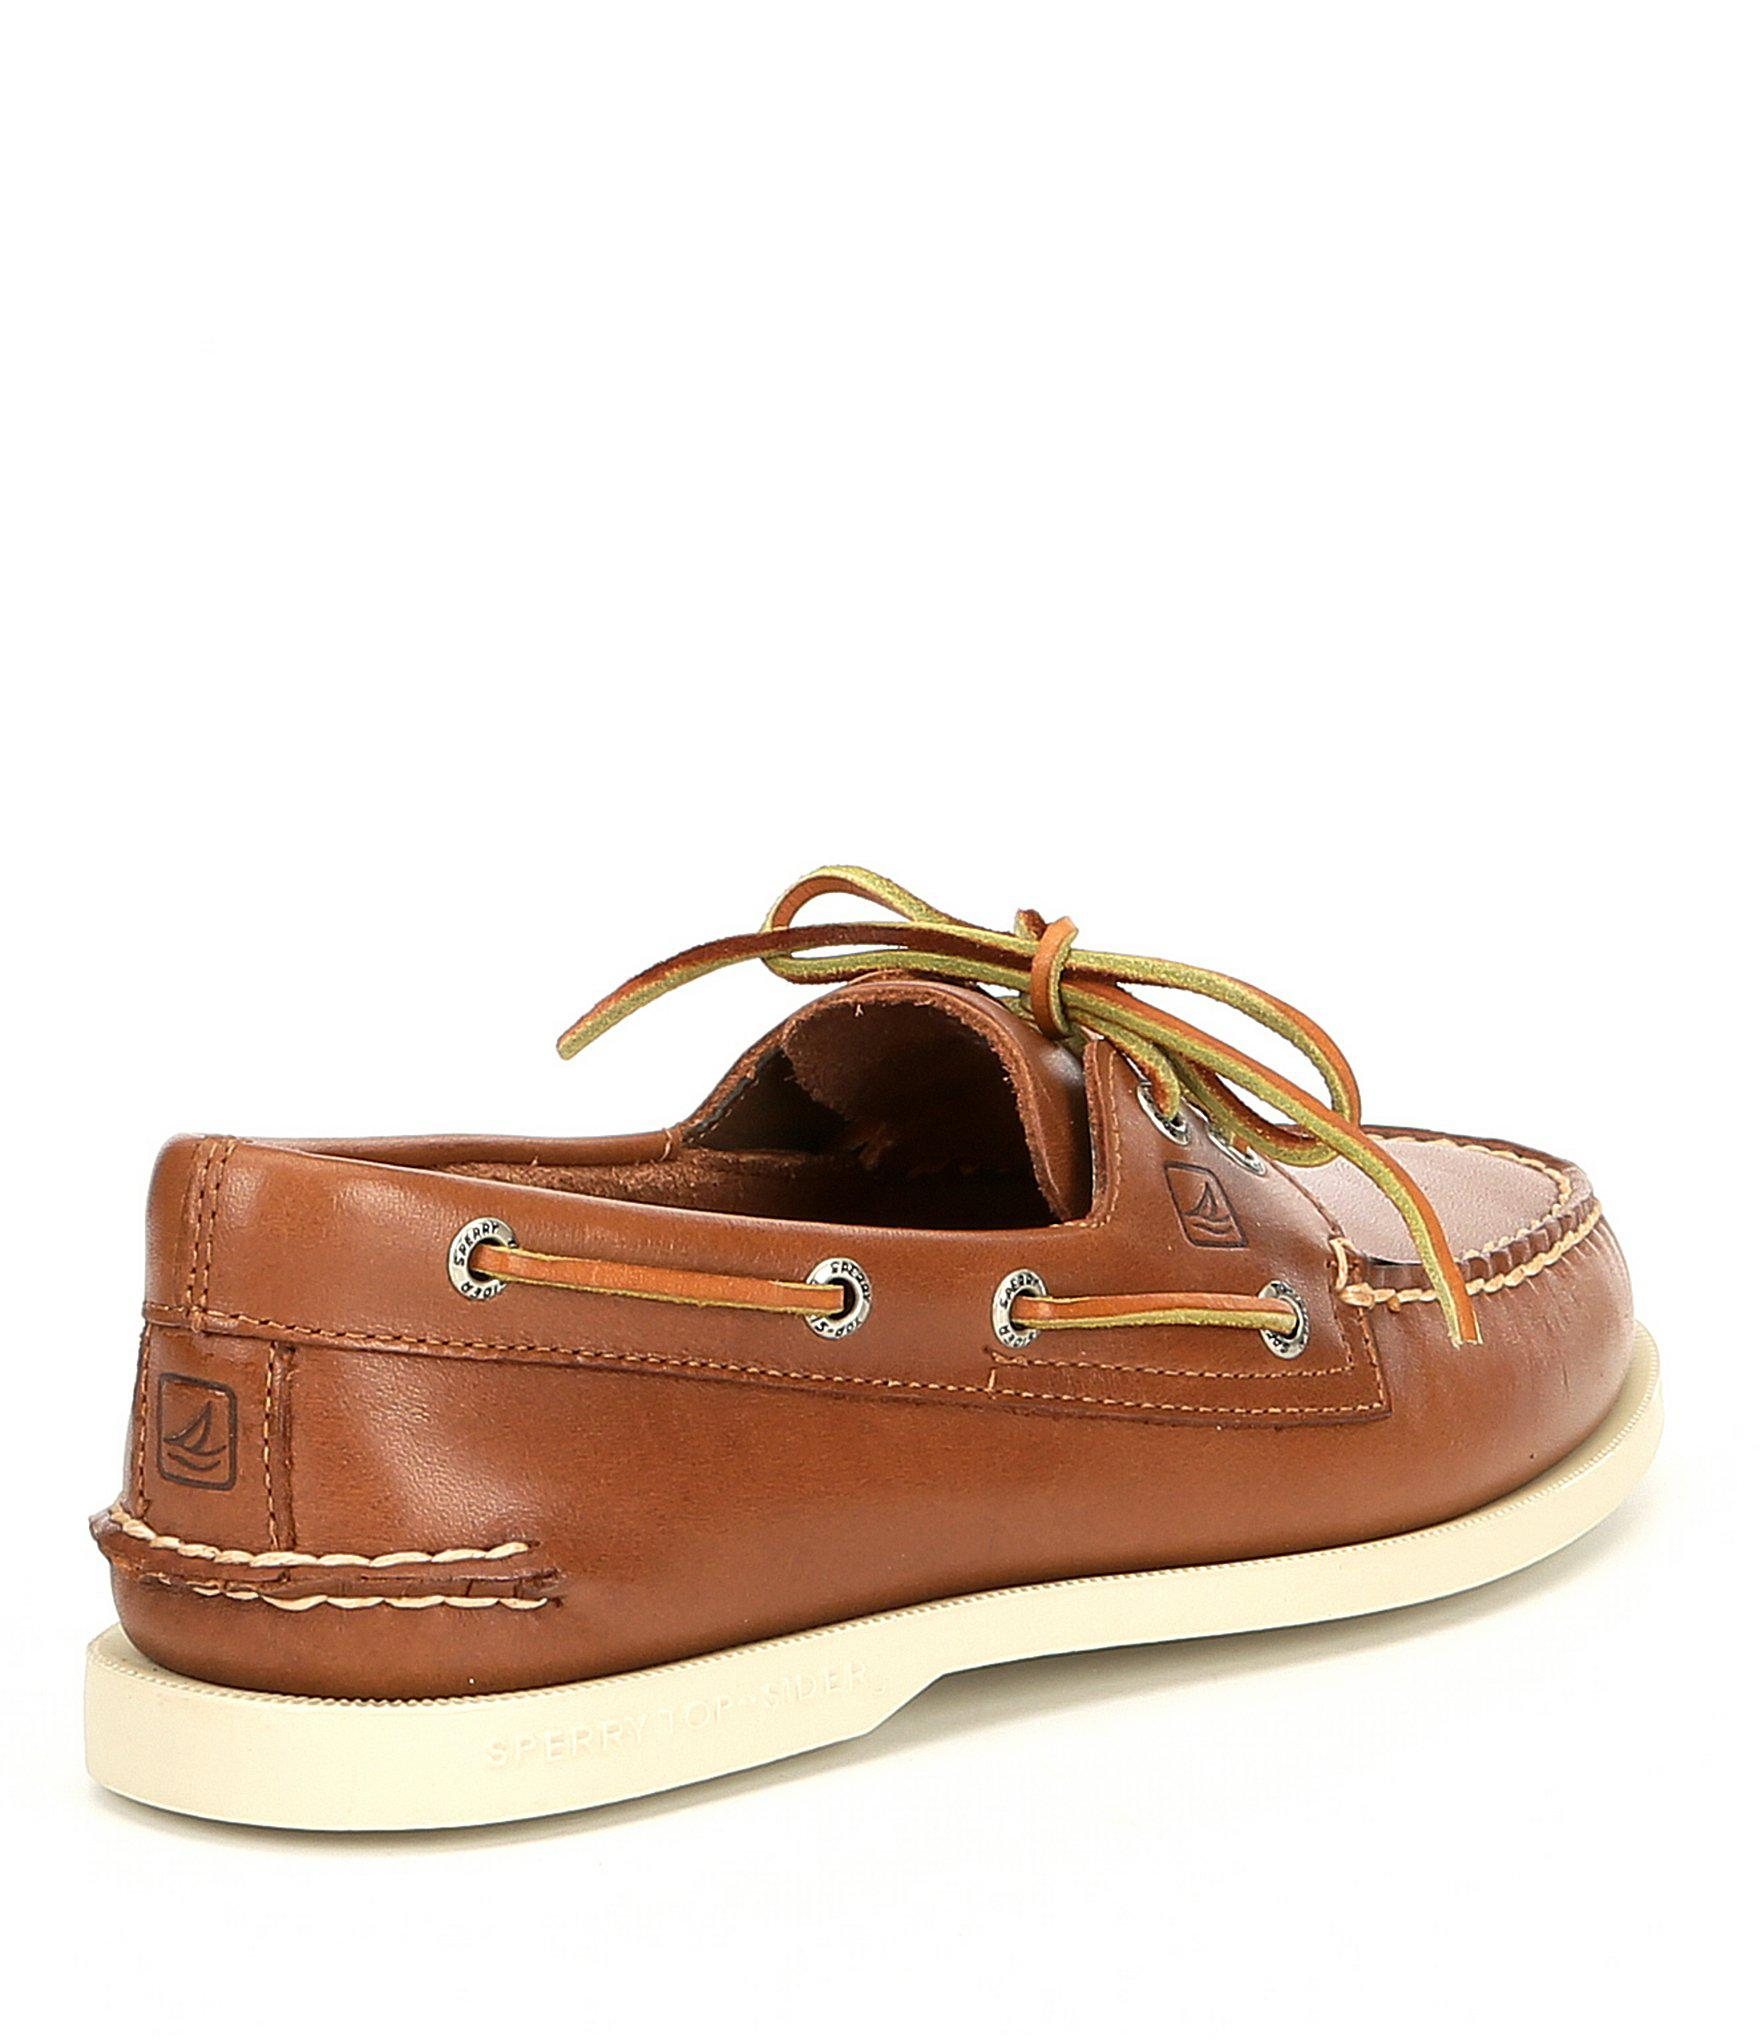 8bcc029c48 Sperry Top-Sider - Brown Men's Top-sider Authentic Original 2-eye Boat.  View fullscreen